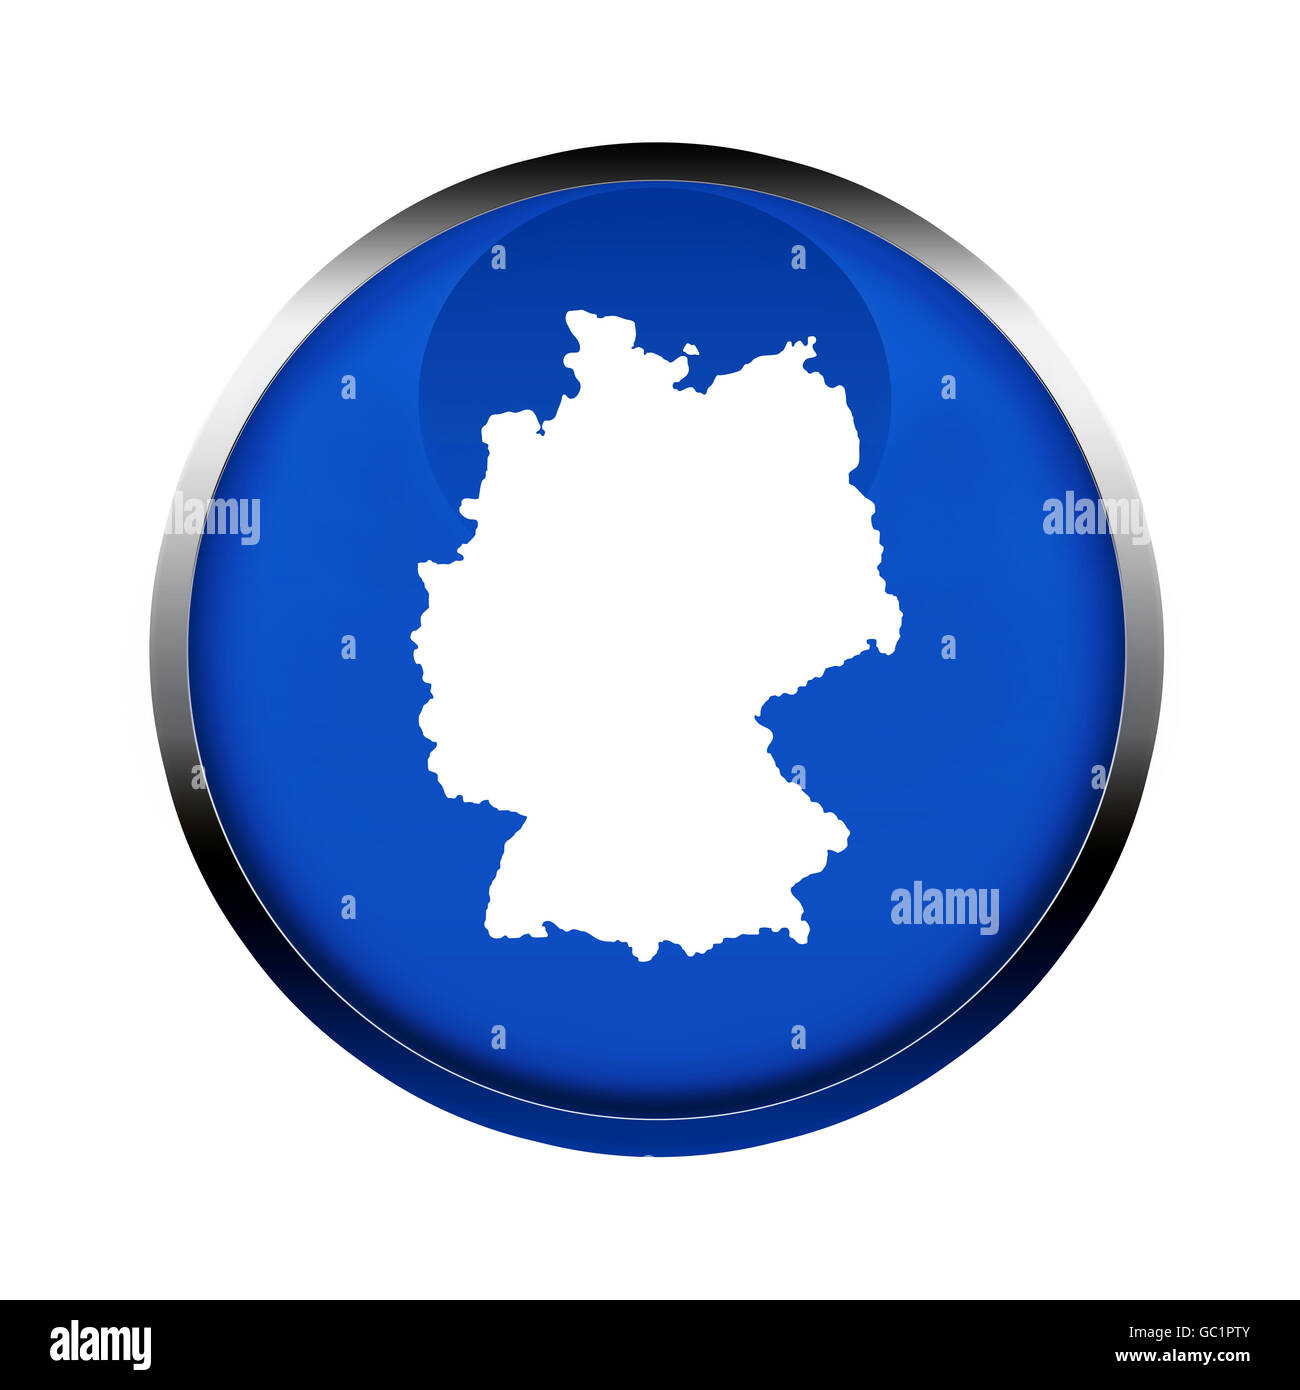 Germany map button in the colors of the European Union. - Stock Image